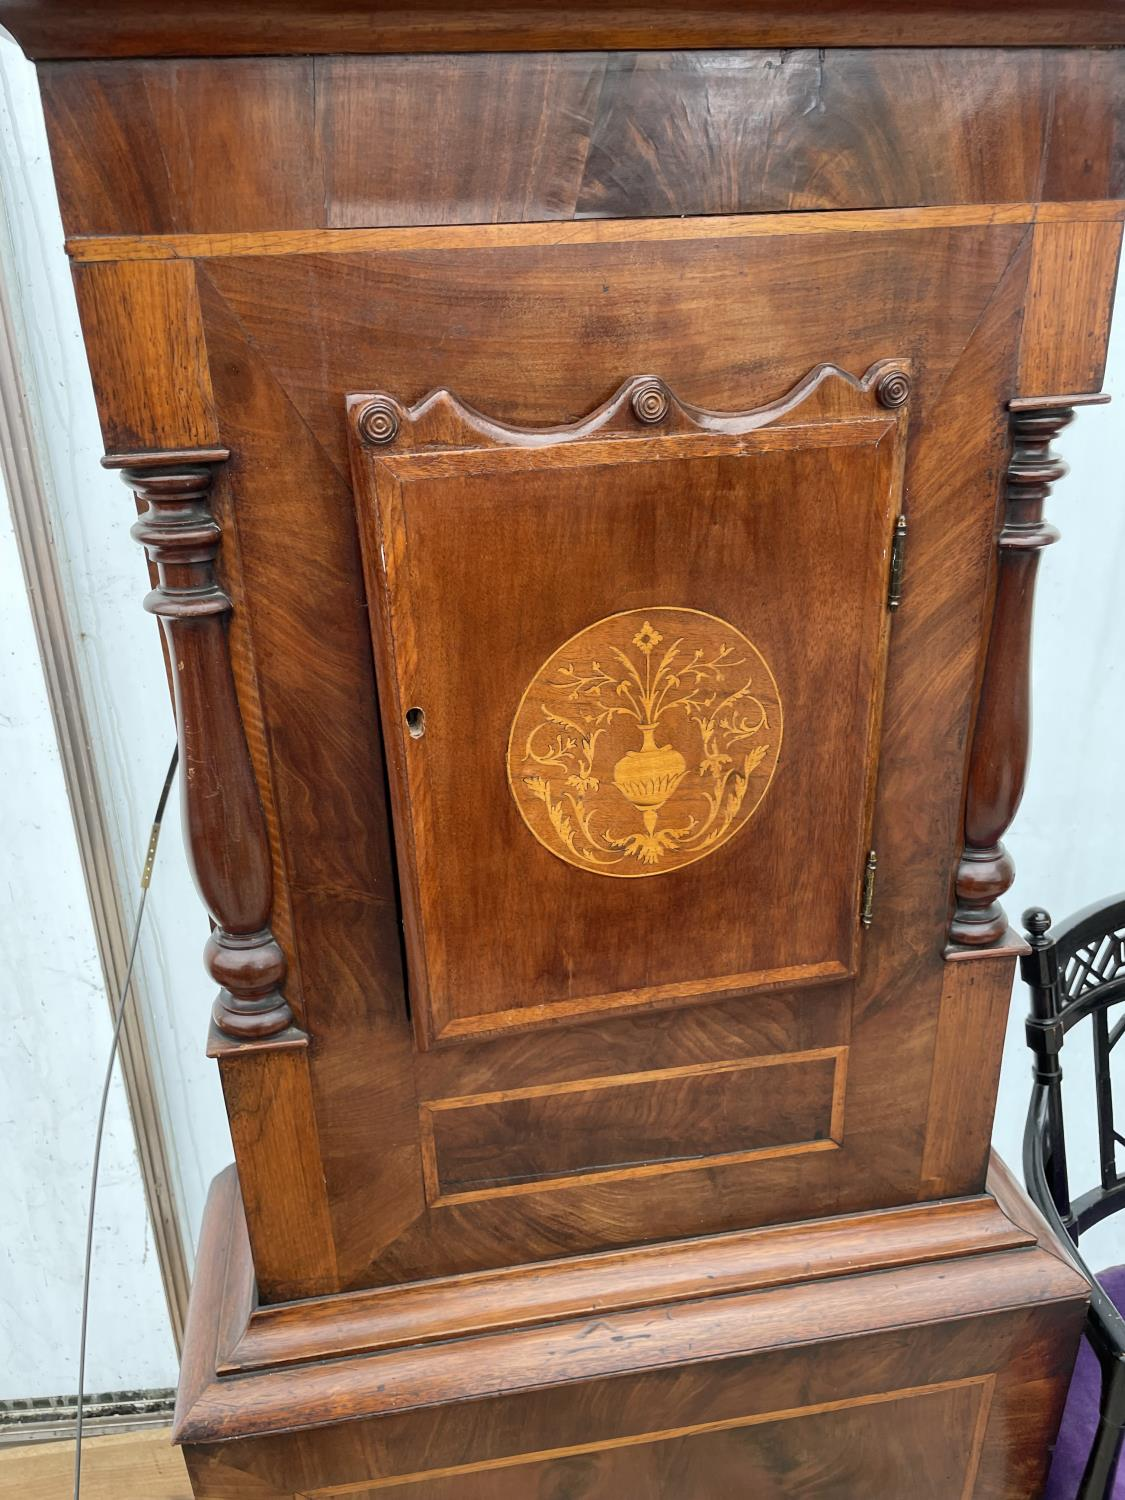 A 19TH CENTURY AND LATER EIGHT DAY MAHOGANY AND INLAID LONGCASE CLOCK WITH ENAMEL DIAL (GROUNDS, - Image 5 of 8